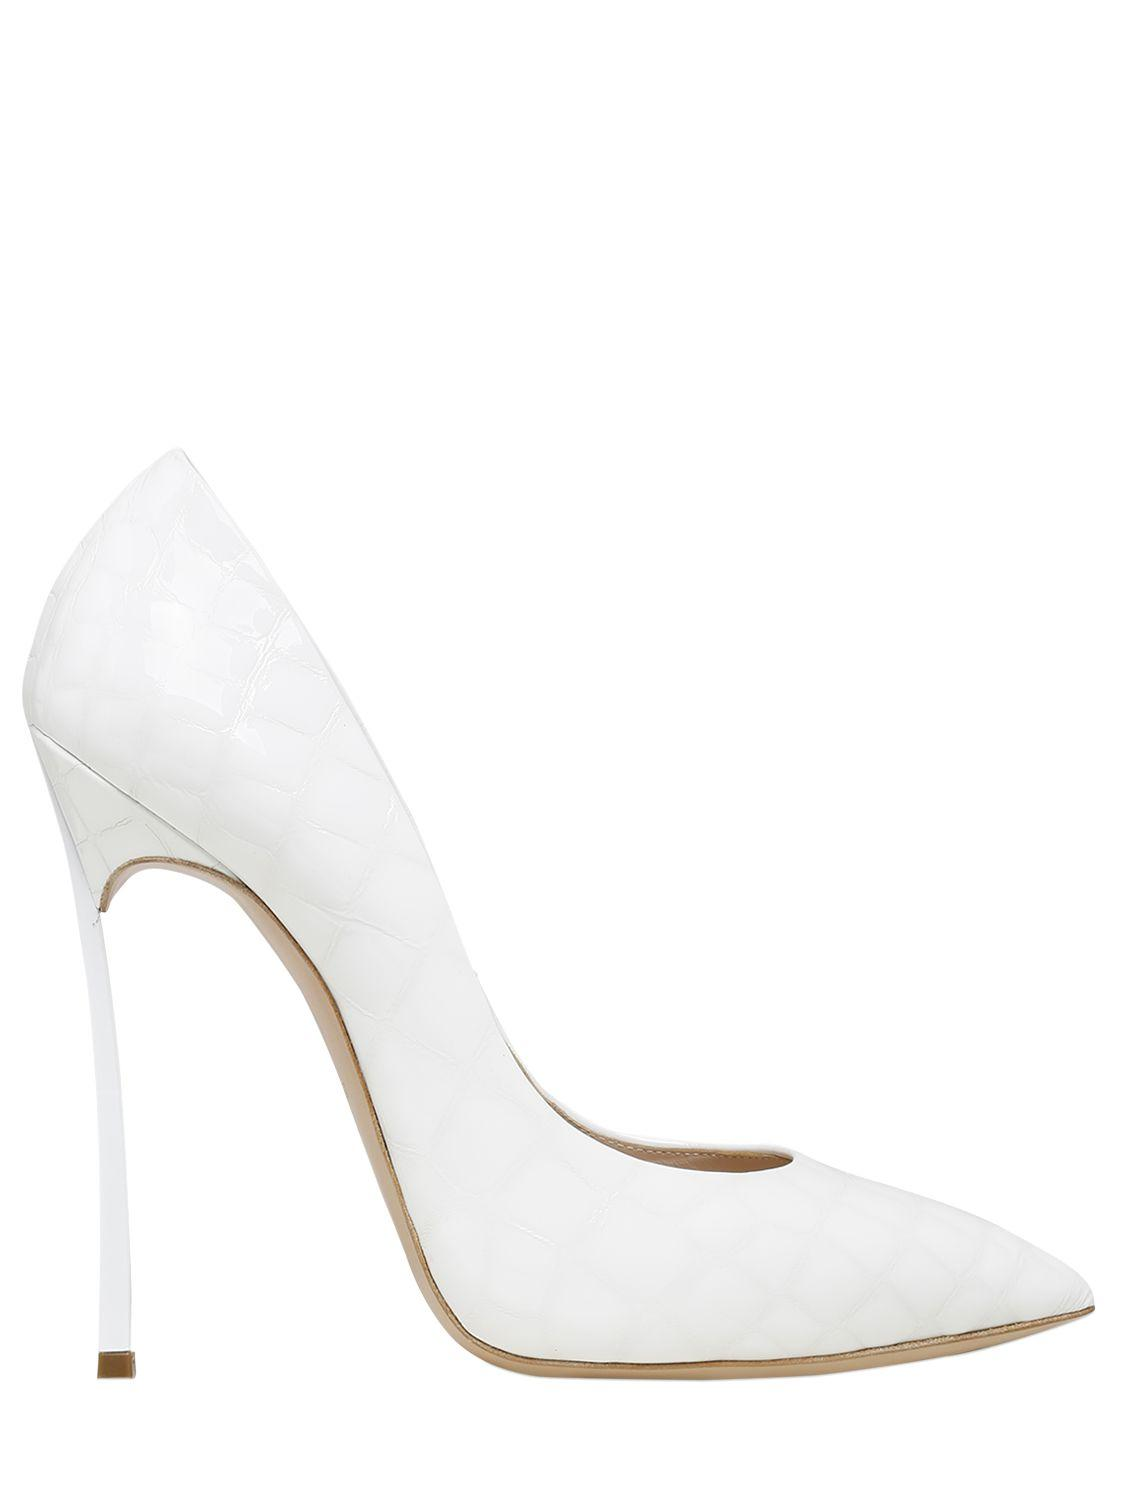 0931f7aea7 Lyst - Casadei 120mm Blade Croc Embossed Leather Pumps in White